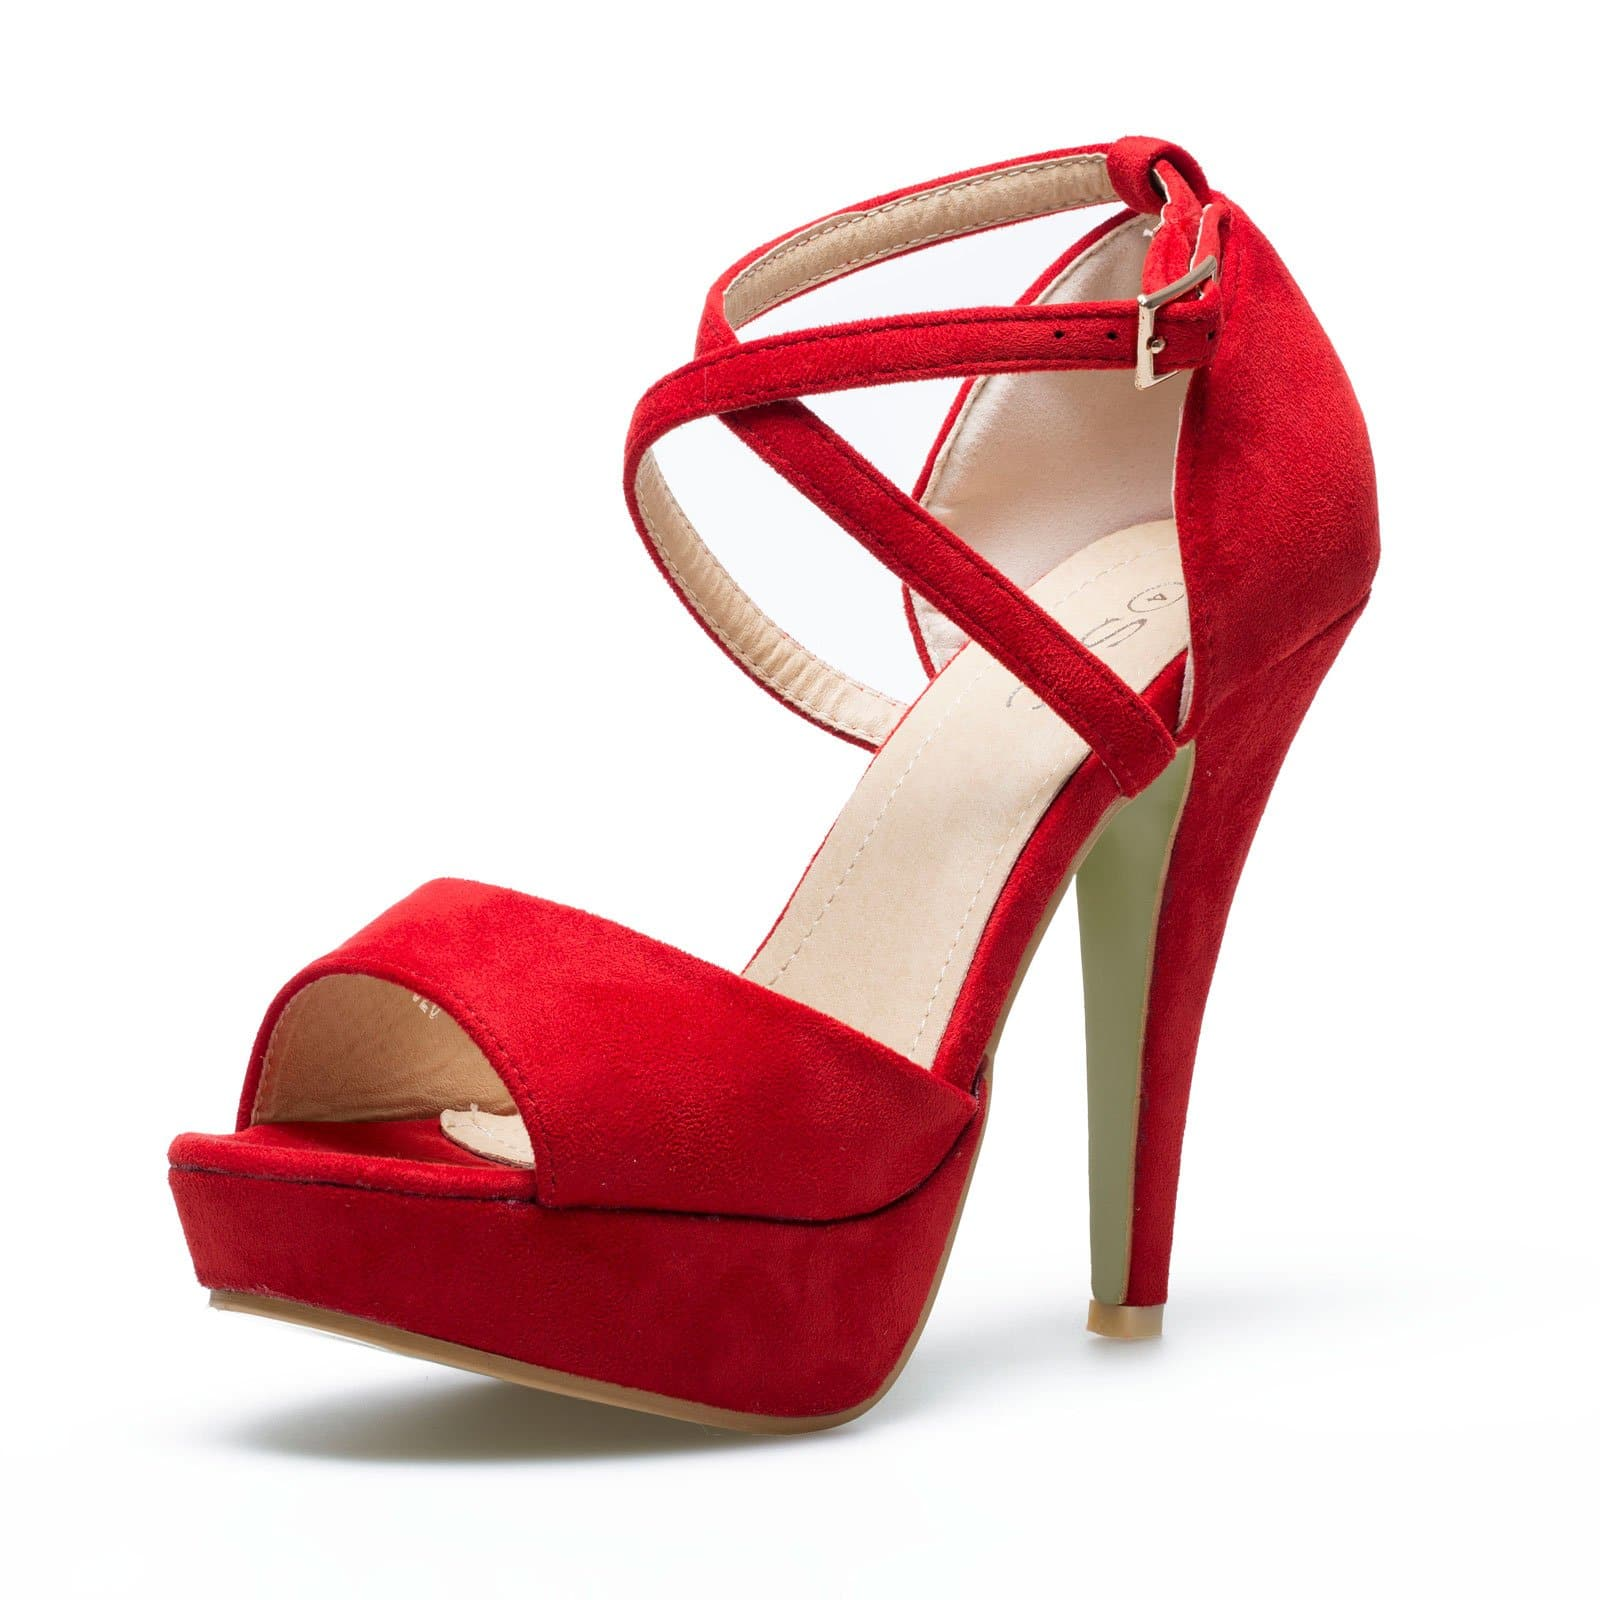 photographing Footwear for E-Commerce